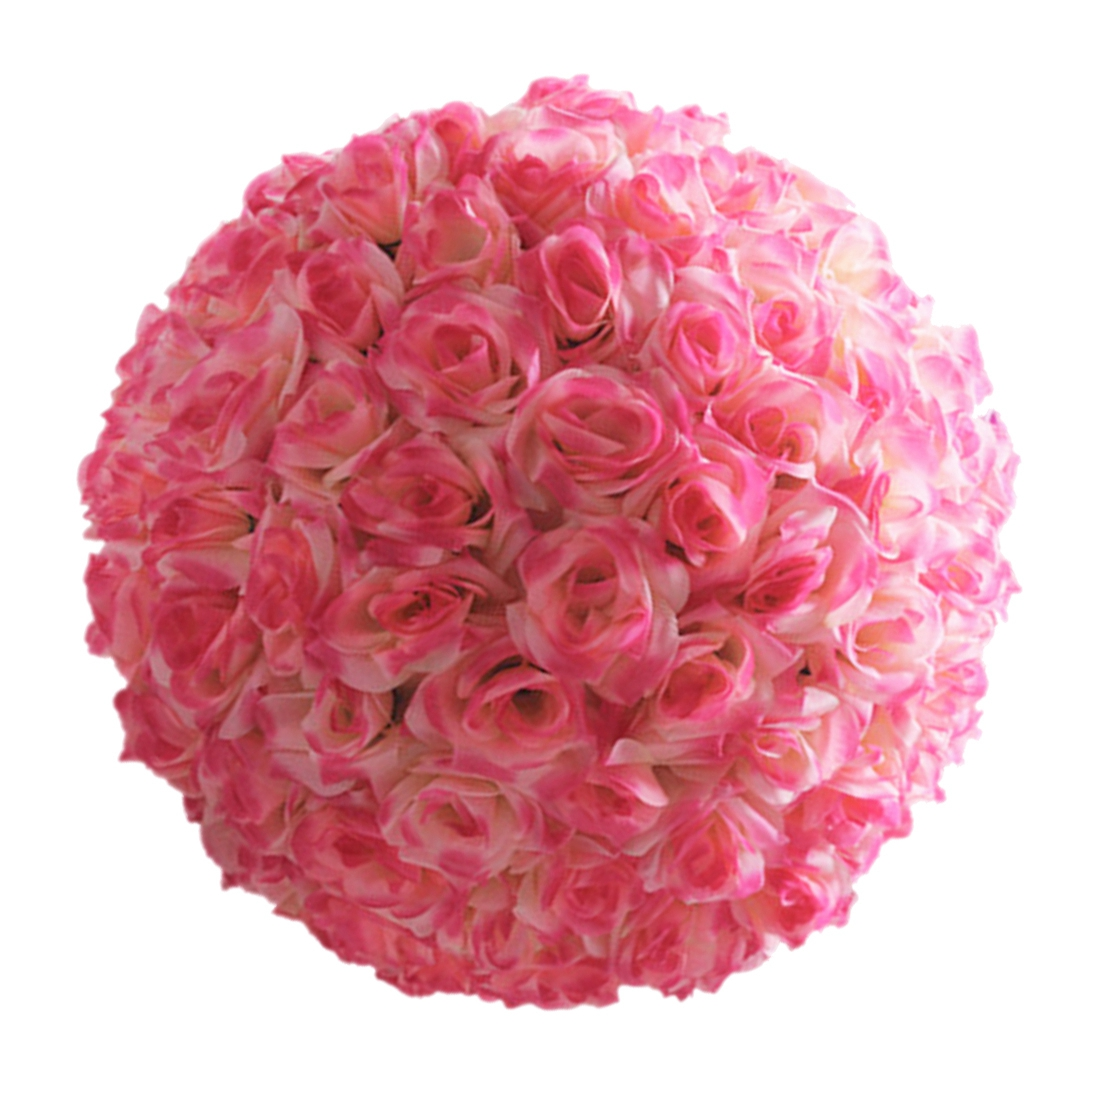 K9 8 wedding decorations artificial silk flower ball for Artificial flower for decoration